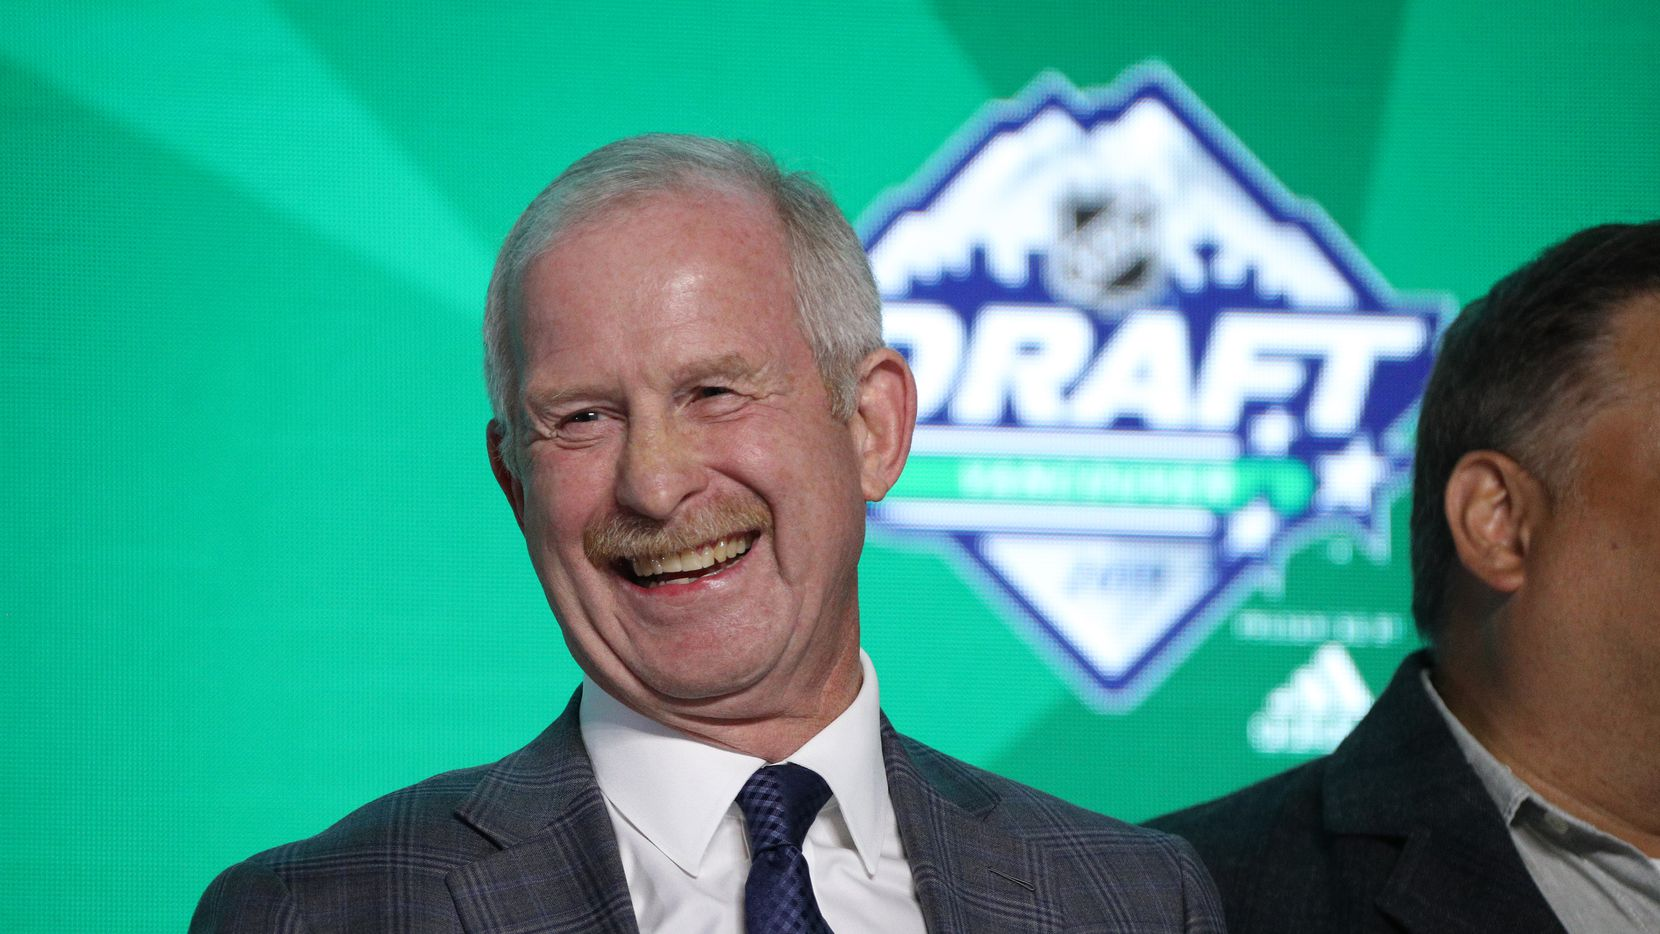 General Manager Jim Nill of the Dallas Stars stands onstage during the first round of the 2019 NHL Draft at Rogers Arena on June 21, 2019 in Vancouver, Canada.